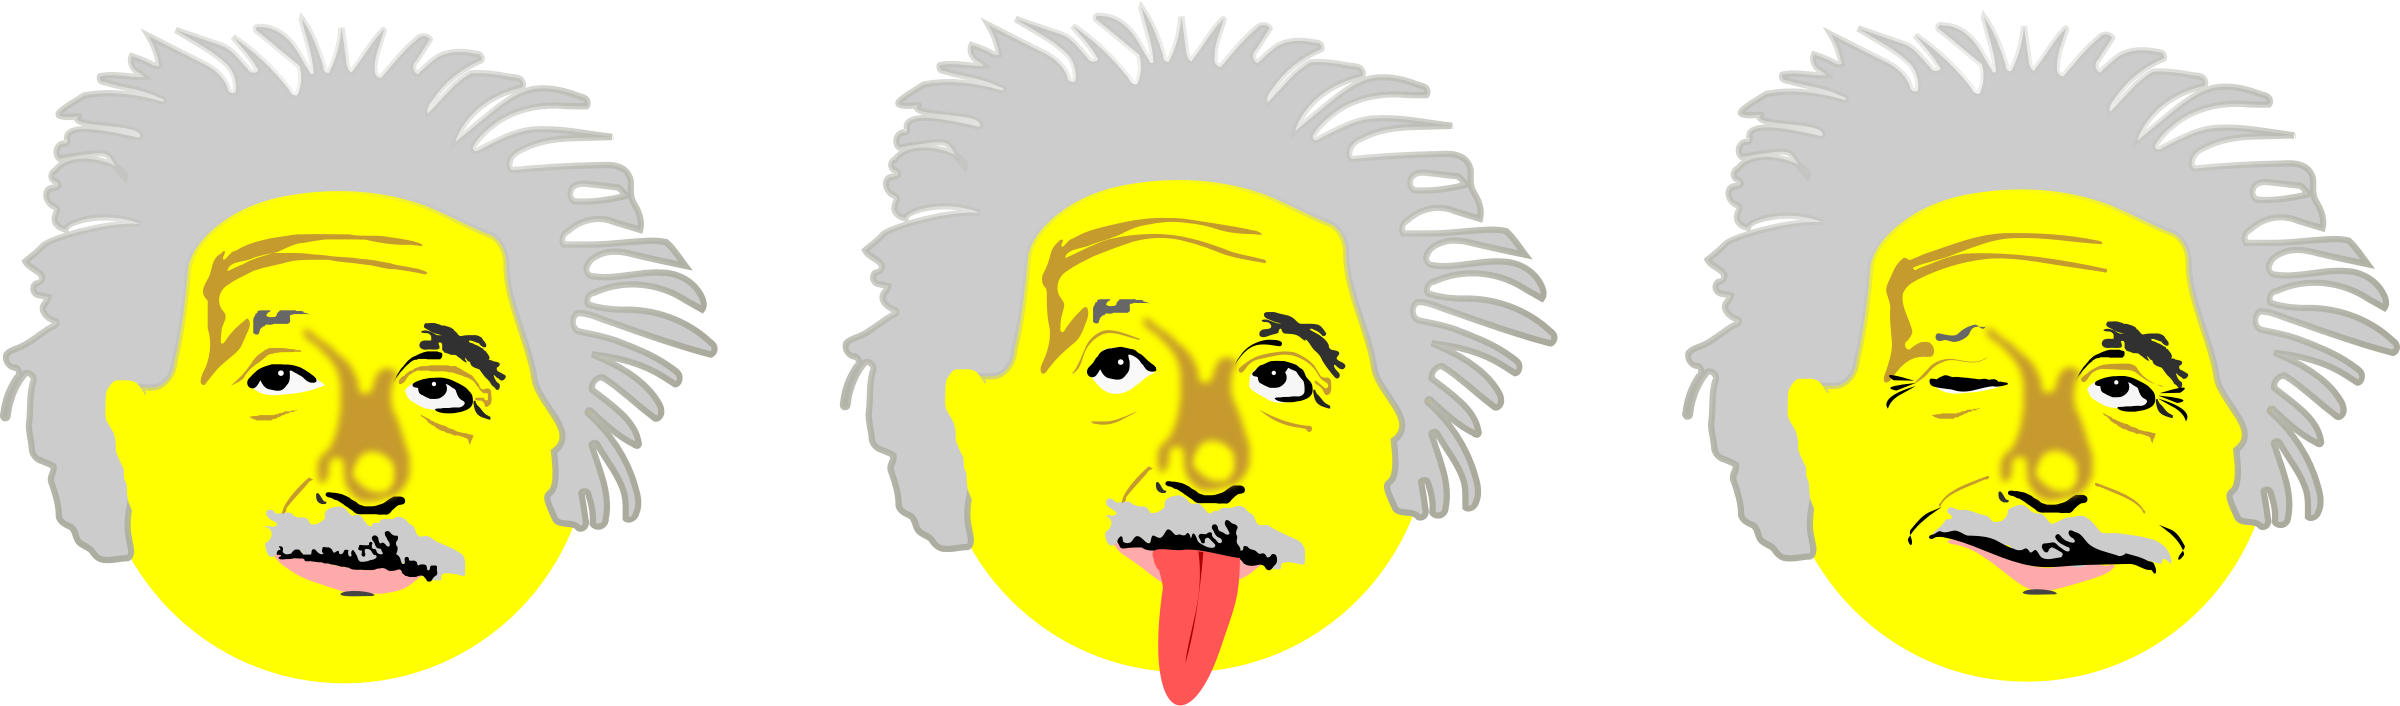 Einstein clipart tongue. Drei smilies big image